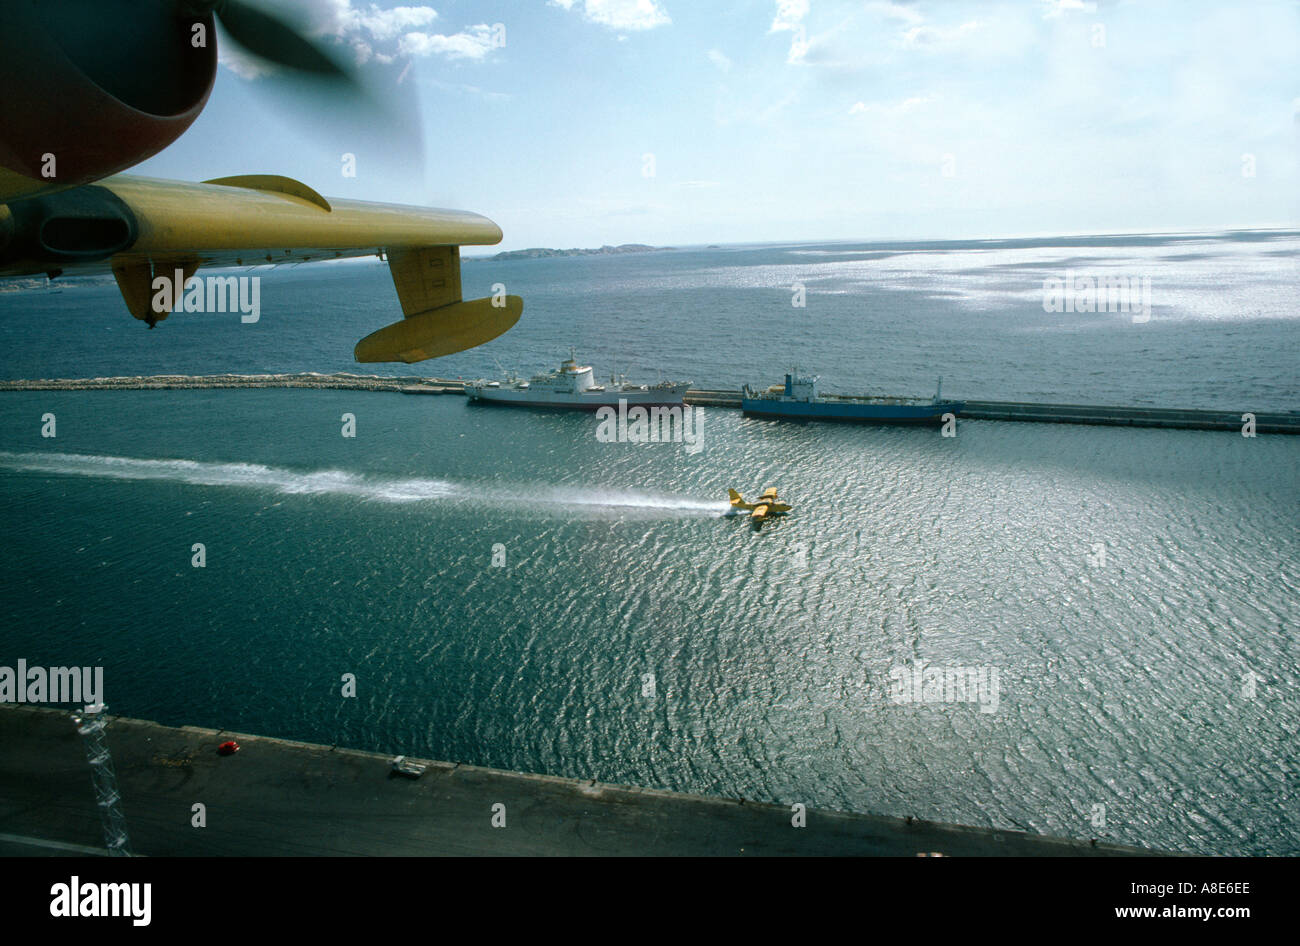 Aerial view of a Canadair firefighting water bomber airplane scooping water from sea, harbour, Provence, France, Stock Photo